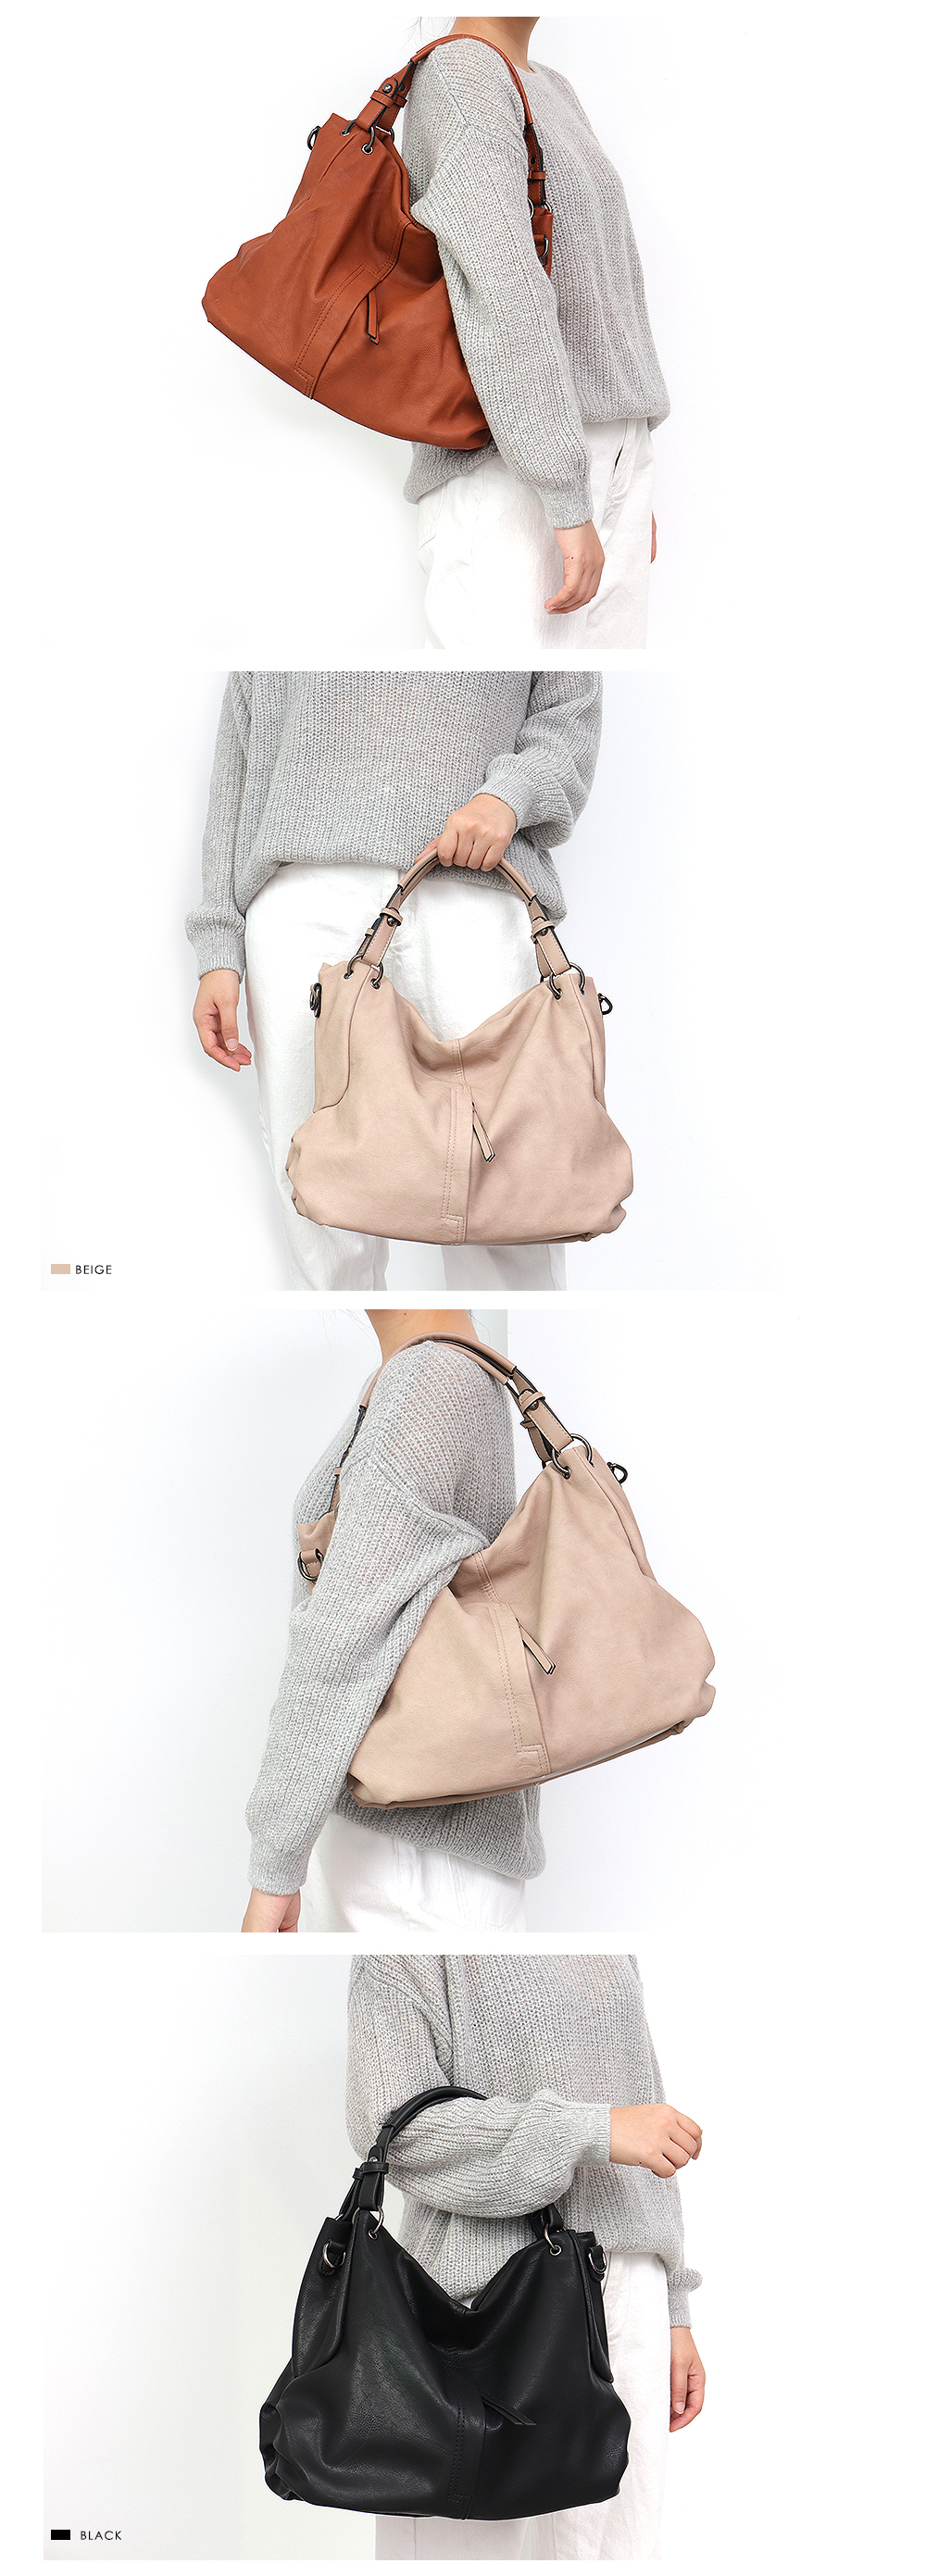 Bags High Pu Leather 8